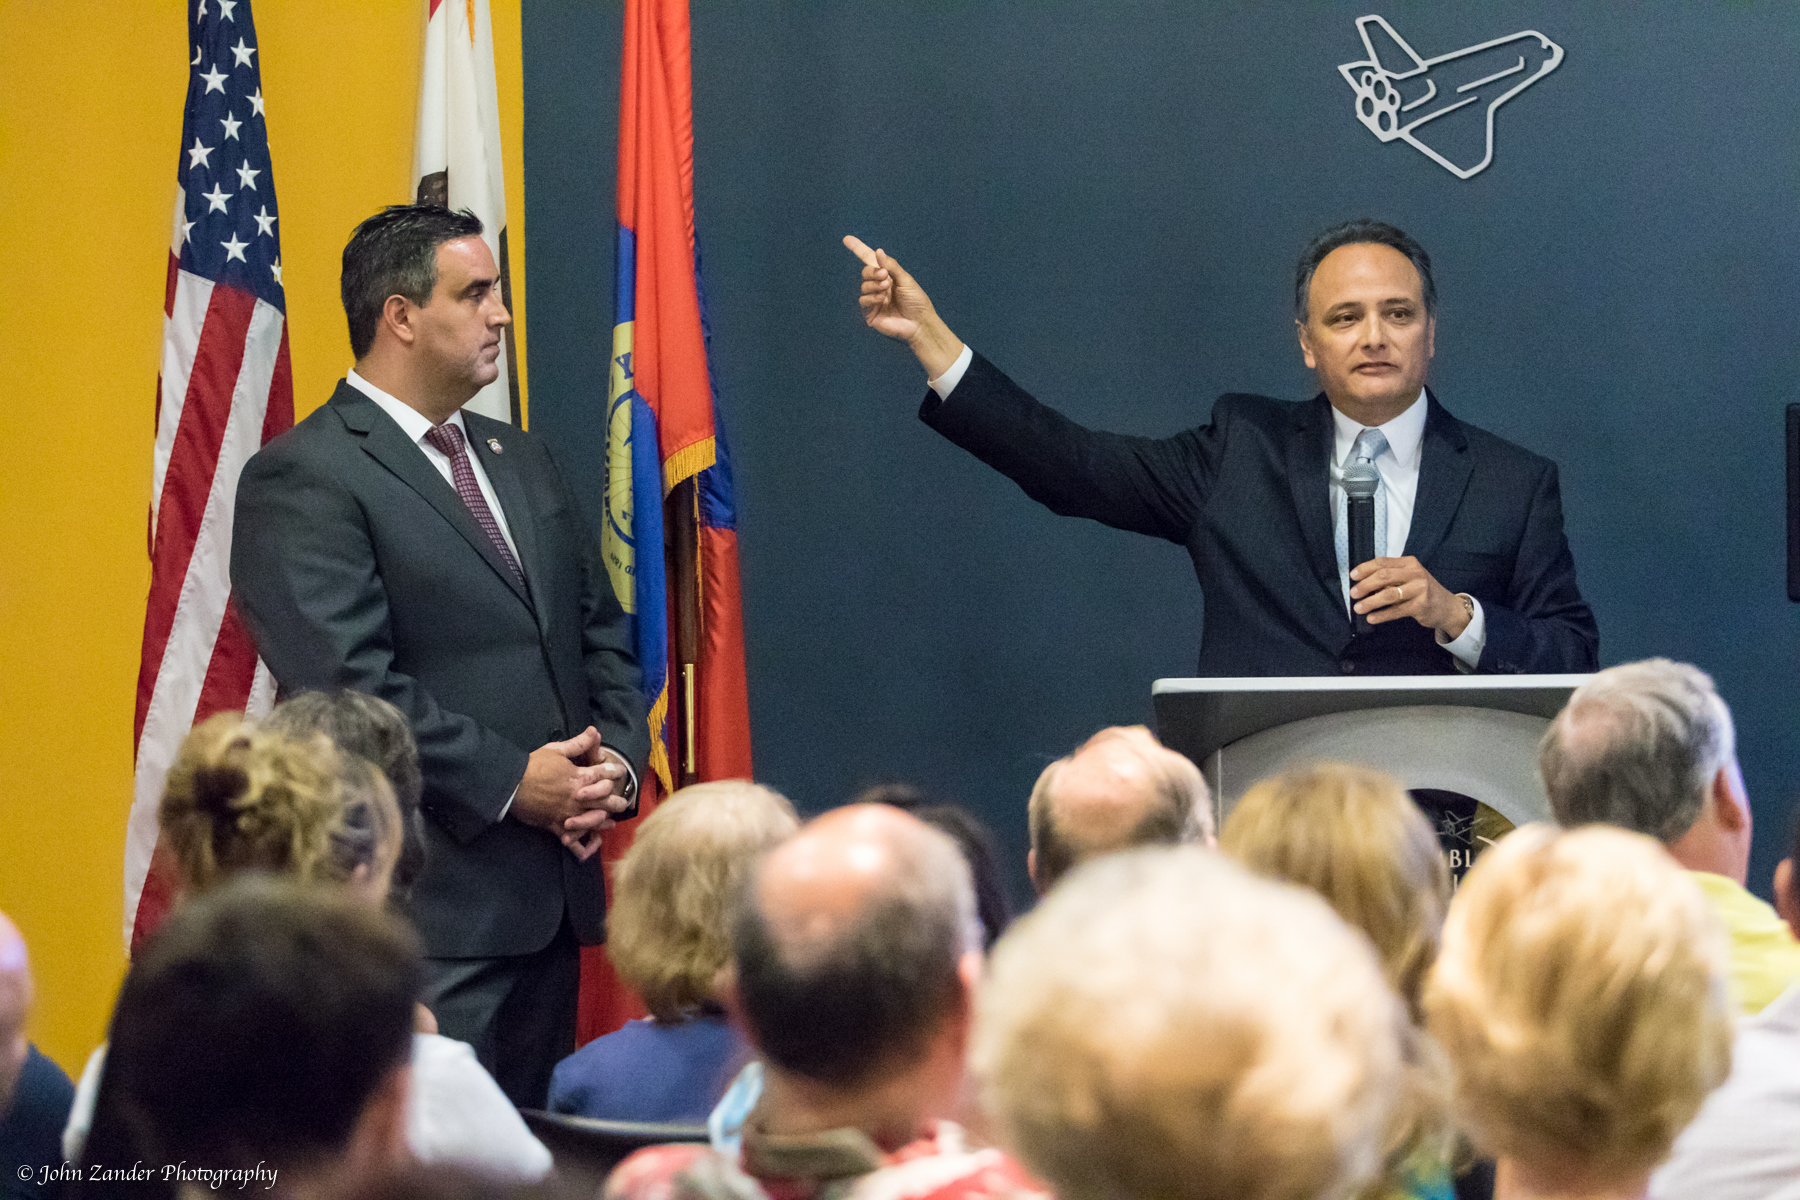 Mayor Pro Tem Alex Saab and city manager Gilbert Livas at Wednesday's town hall meeting, held at the Columbia Memorial Space Center. Photo by John Zander